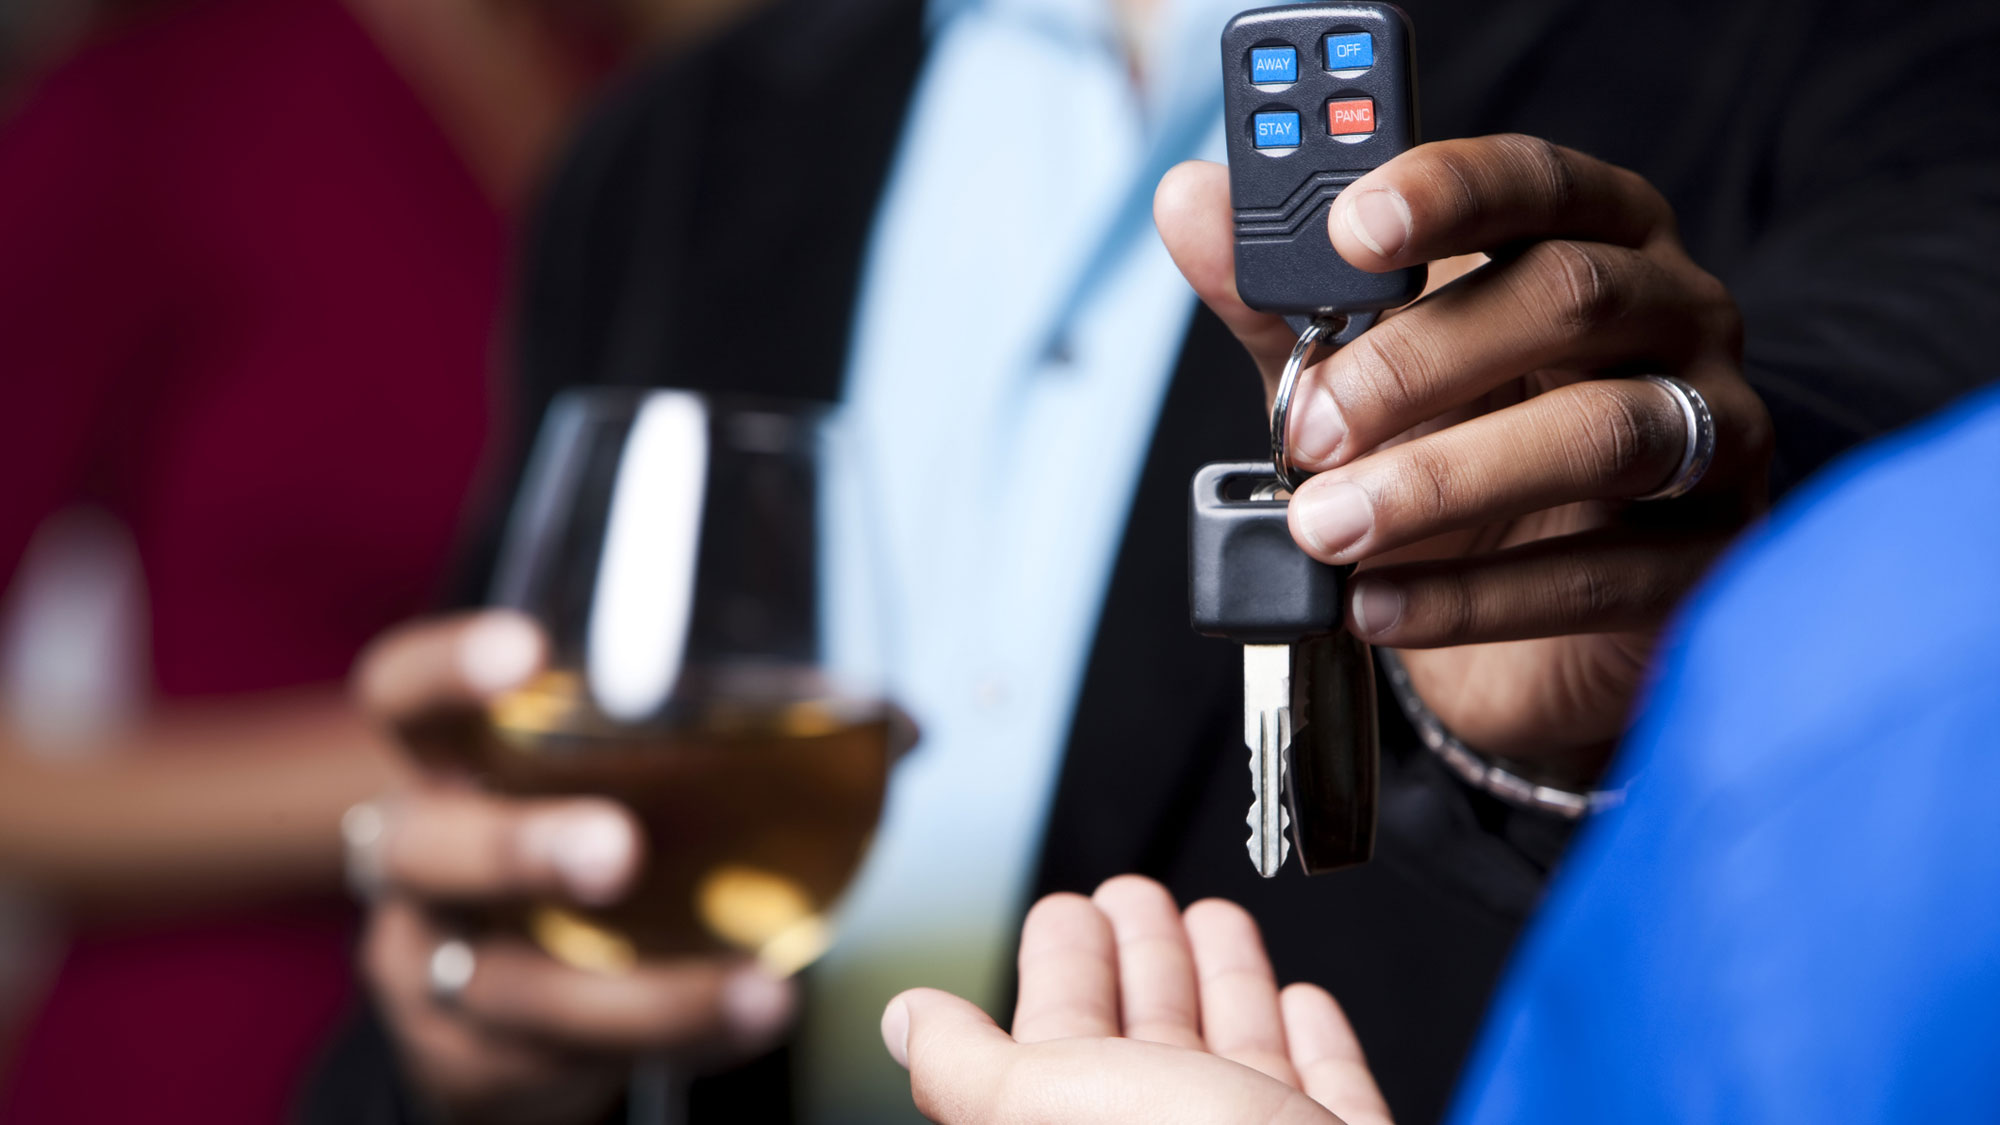 A person drinking hands over his keys to a designated driver. GETTY IMAGES/Jacom Stephens.